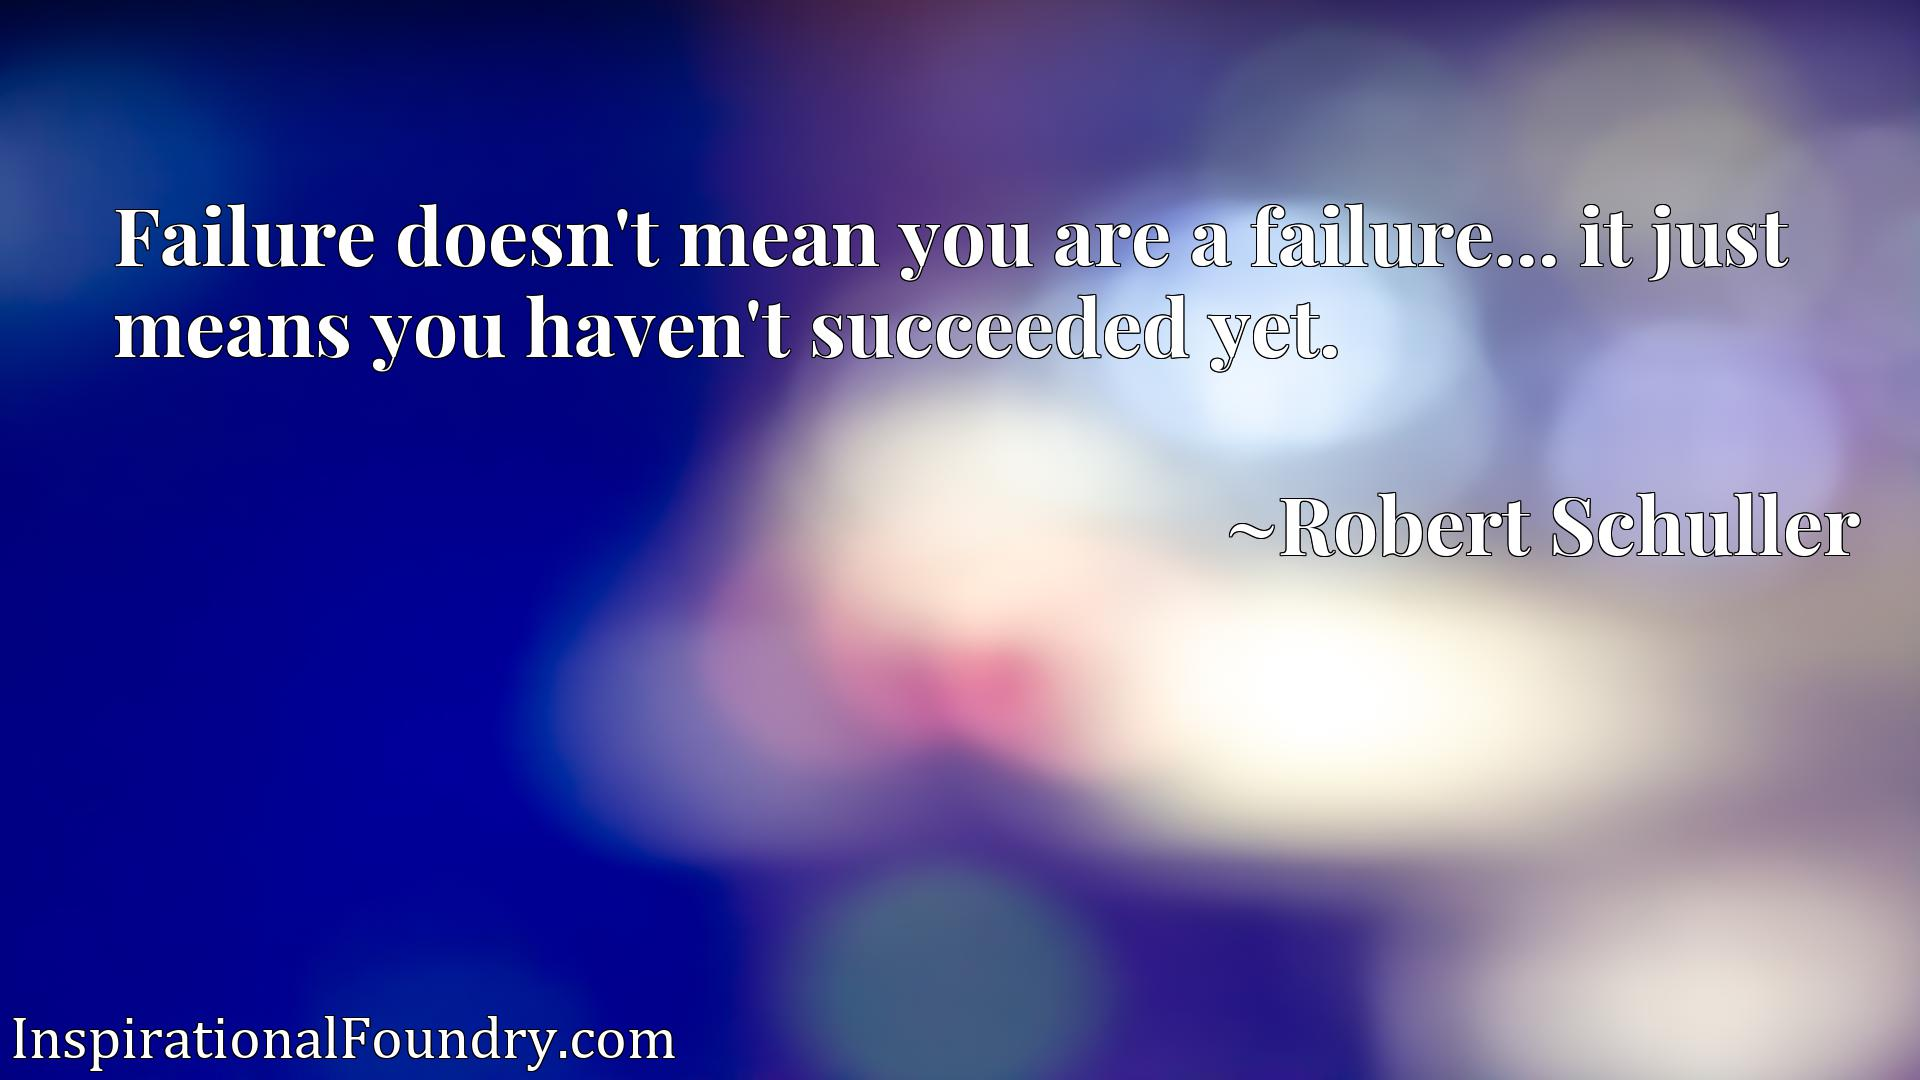 Failure doesn't mean you are a failure... it just means you haven't succeeded yet.